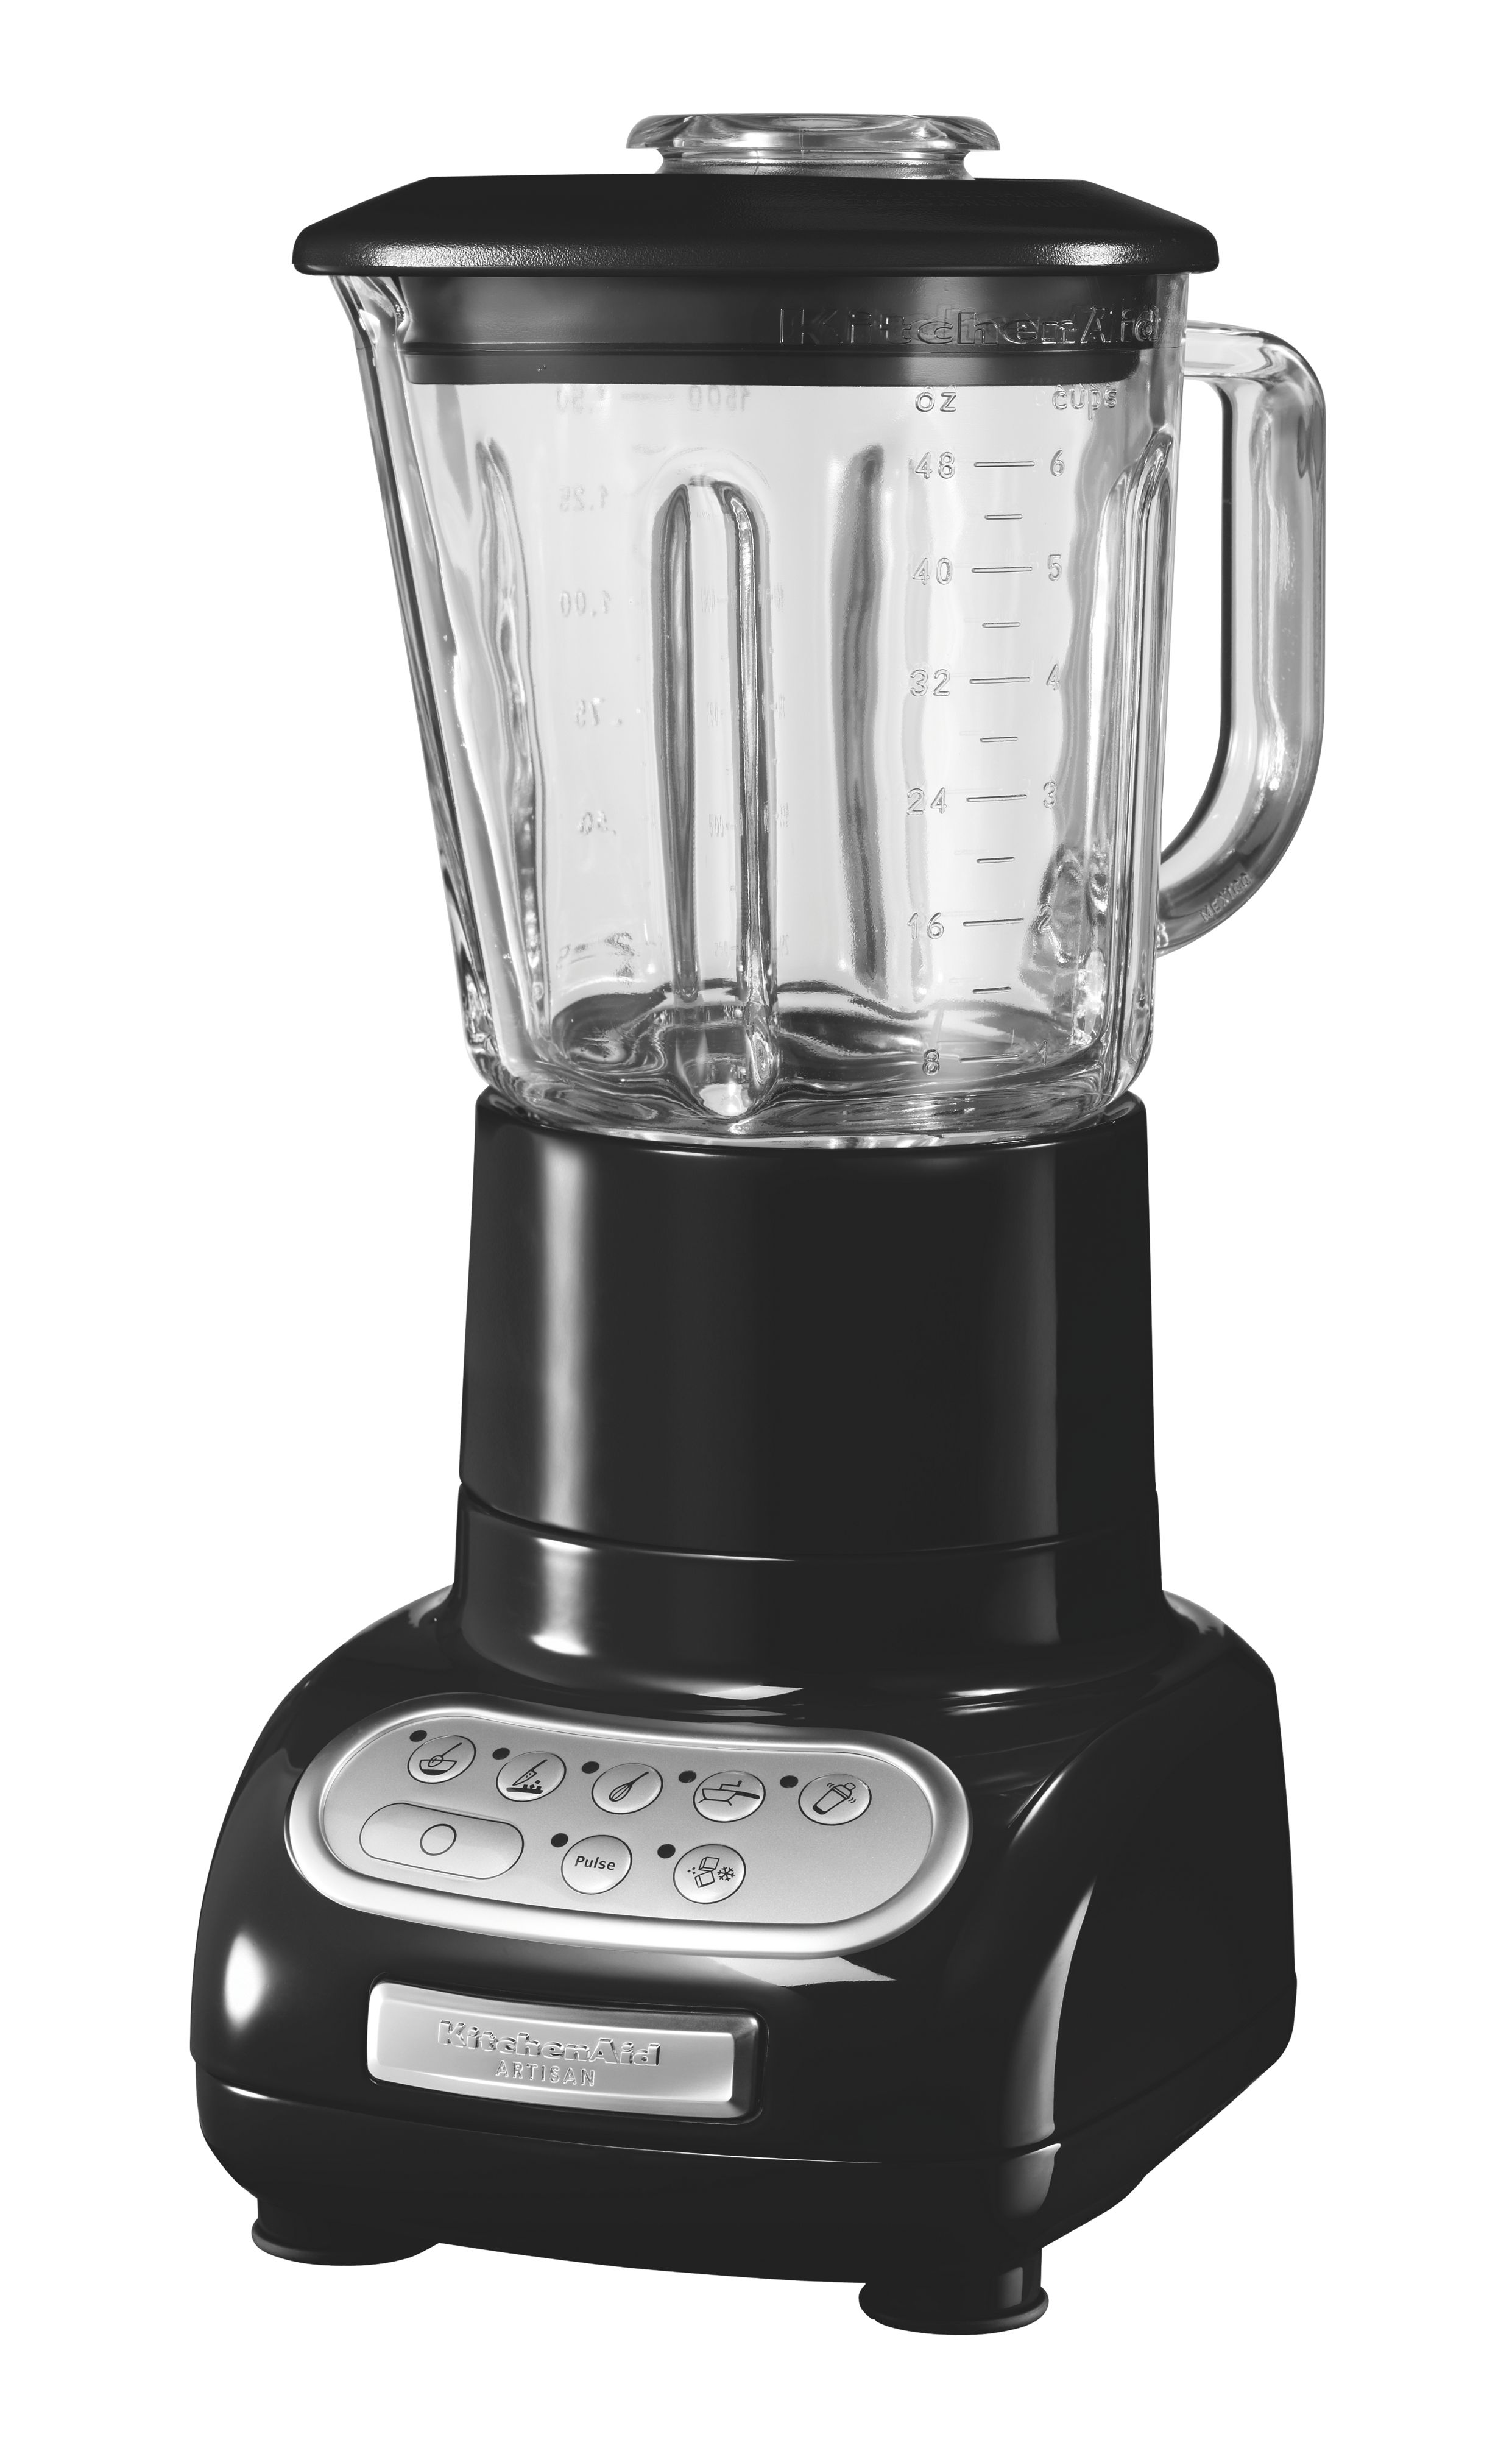 5KSB5553BOB pitcher black blender